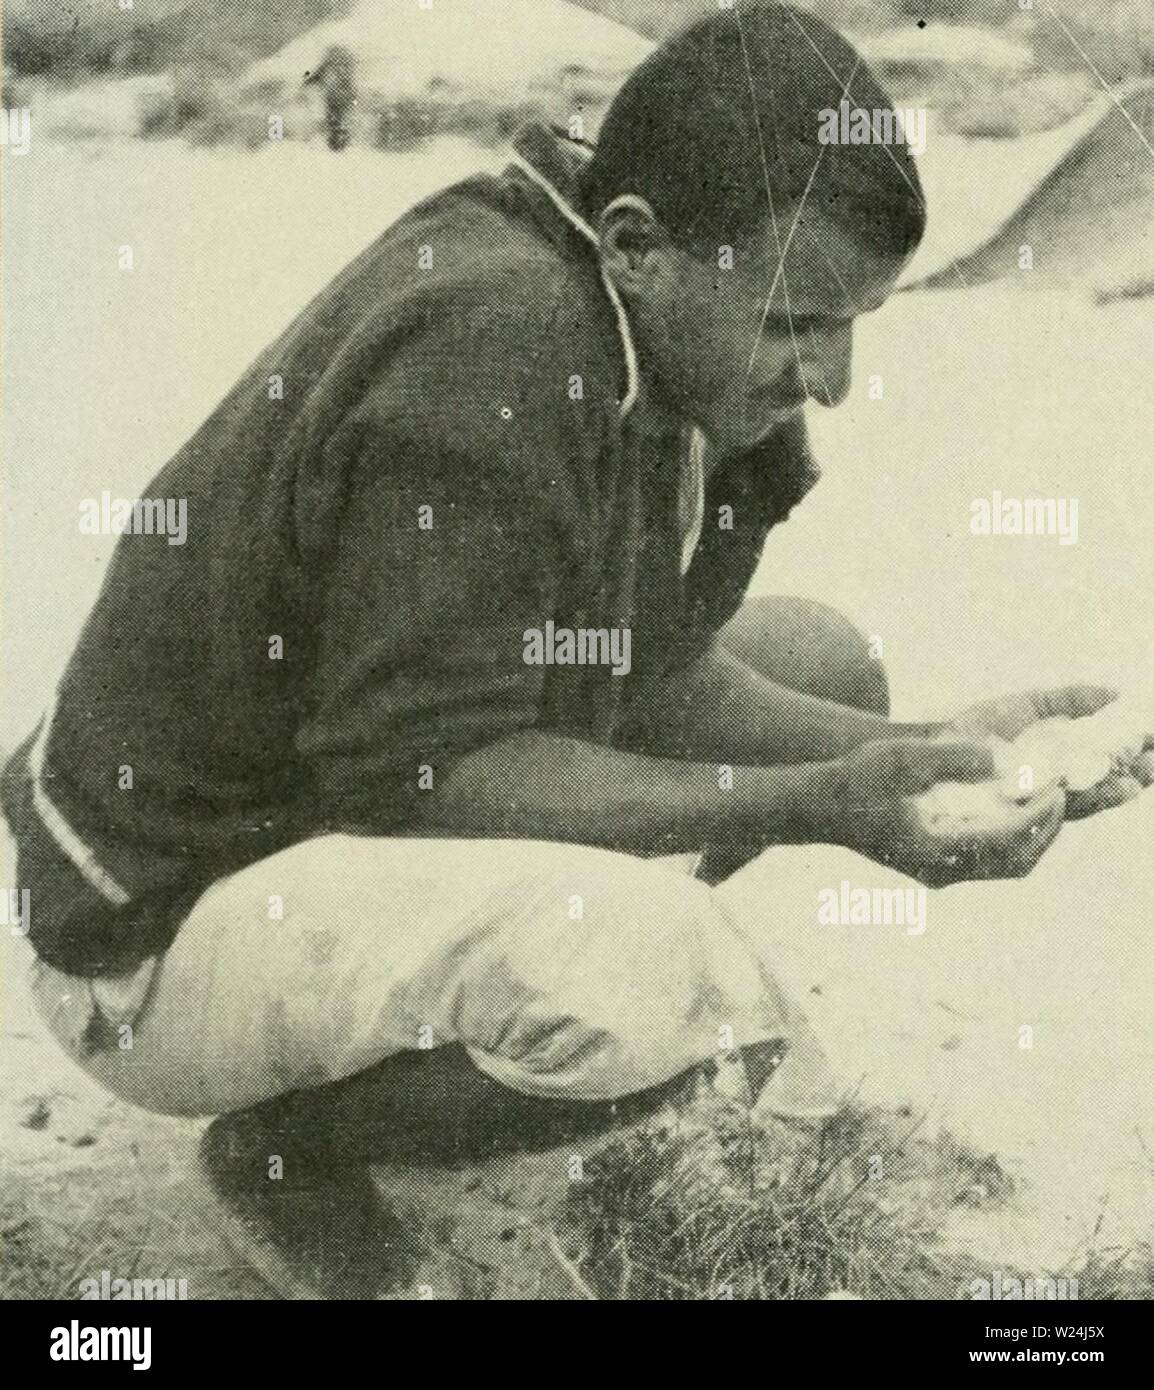 Archive image from page 245 of Dahlak with the Italian National. Dahlak: with the Italian National Underwater Expedition in the Red Sea  dahlakwithitalia00rogh Year: 1957  35- This Temenite chief showed us how to dis- cover turtles' eggs hidden under the sand. - Stock Image